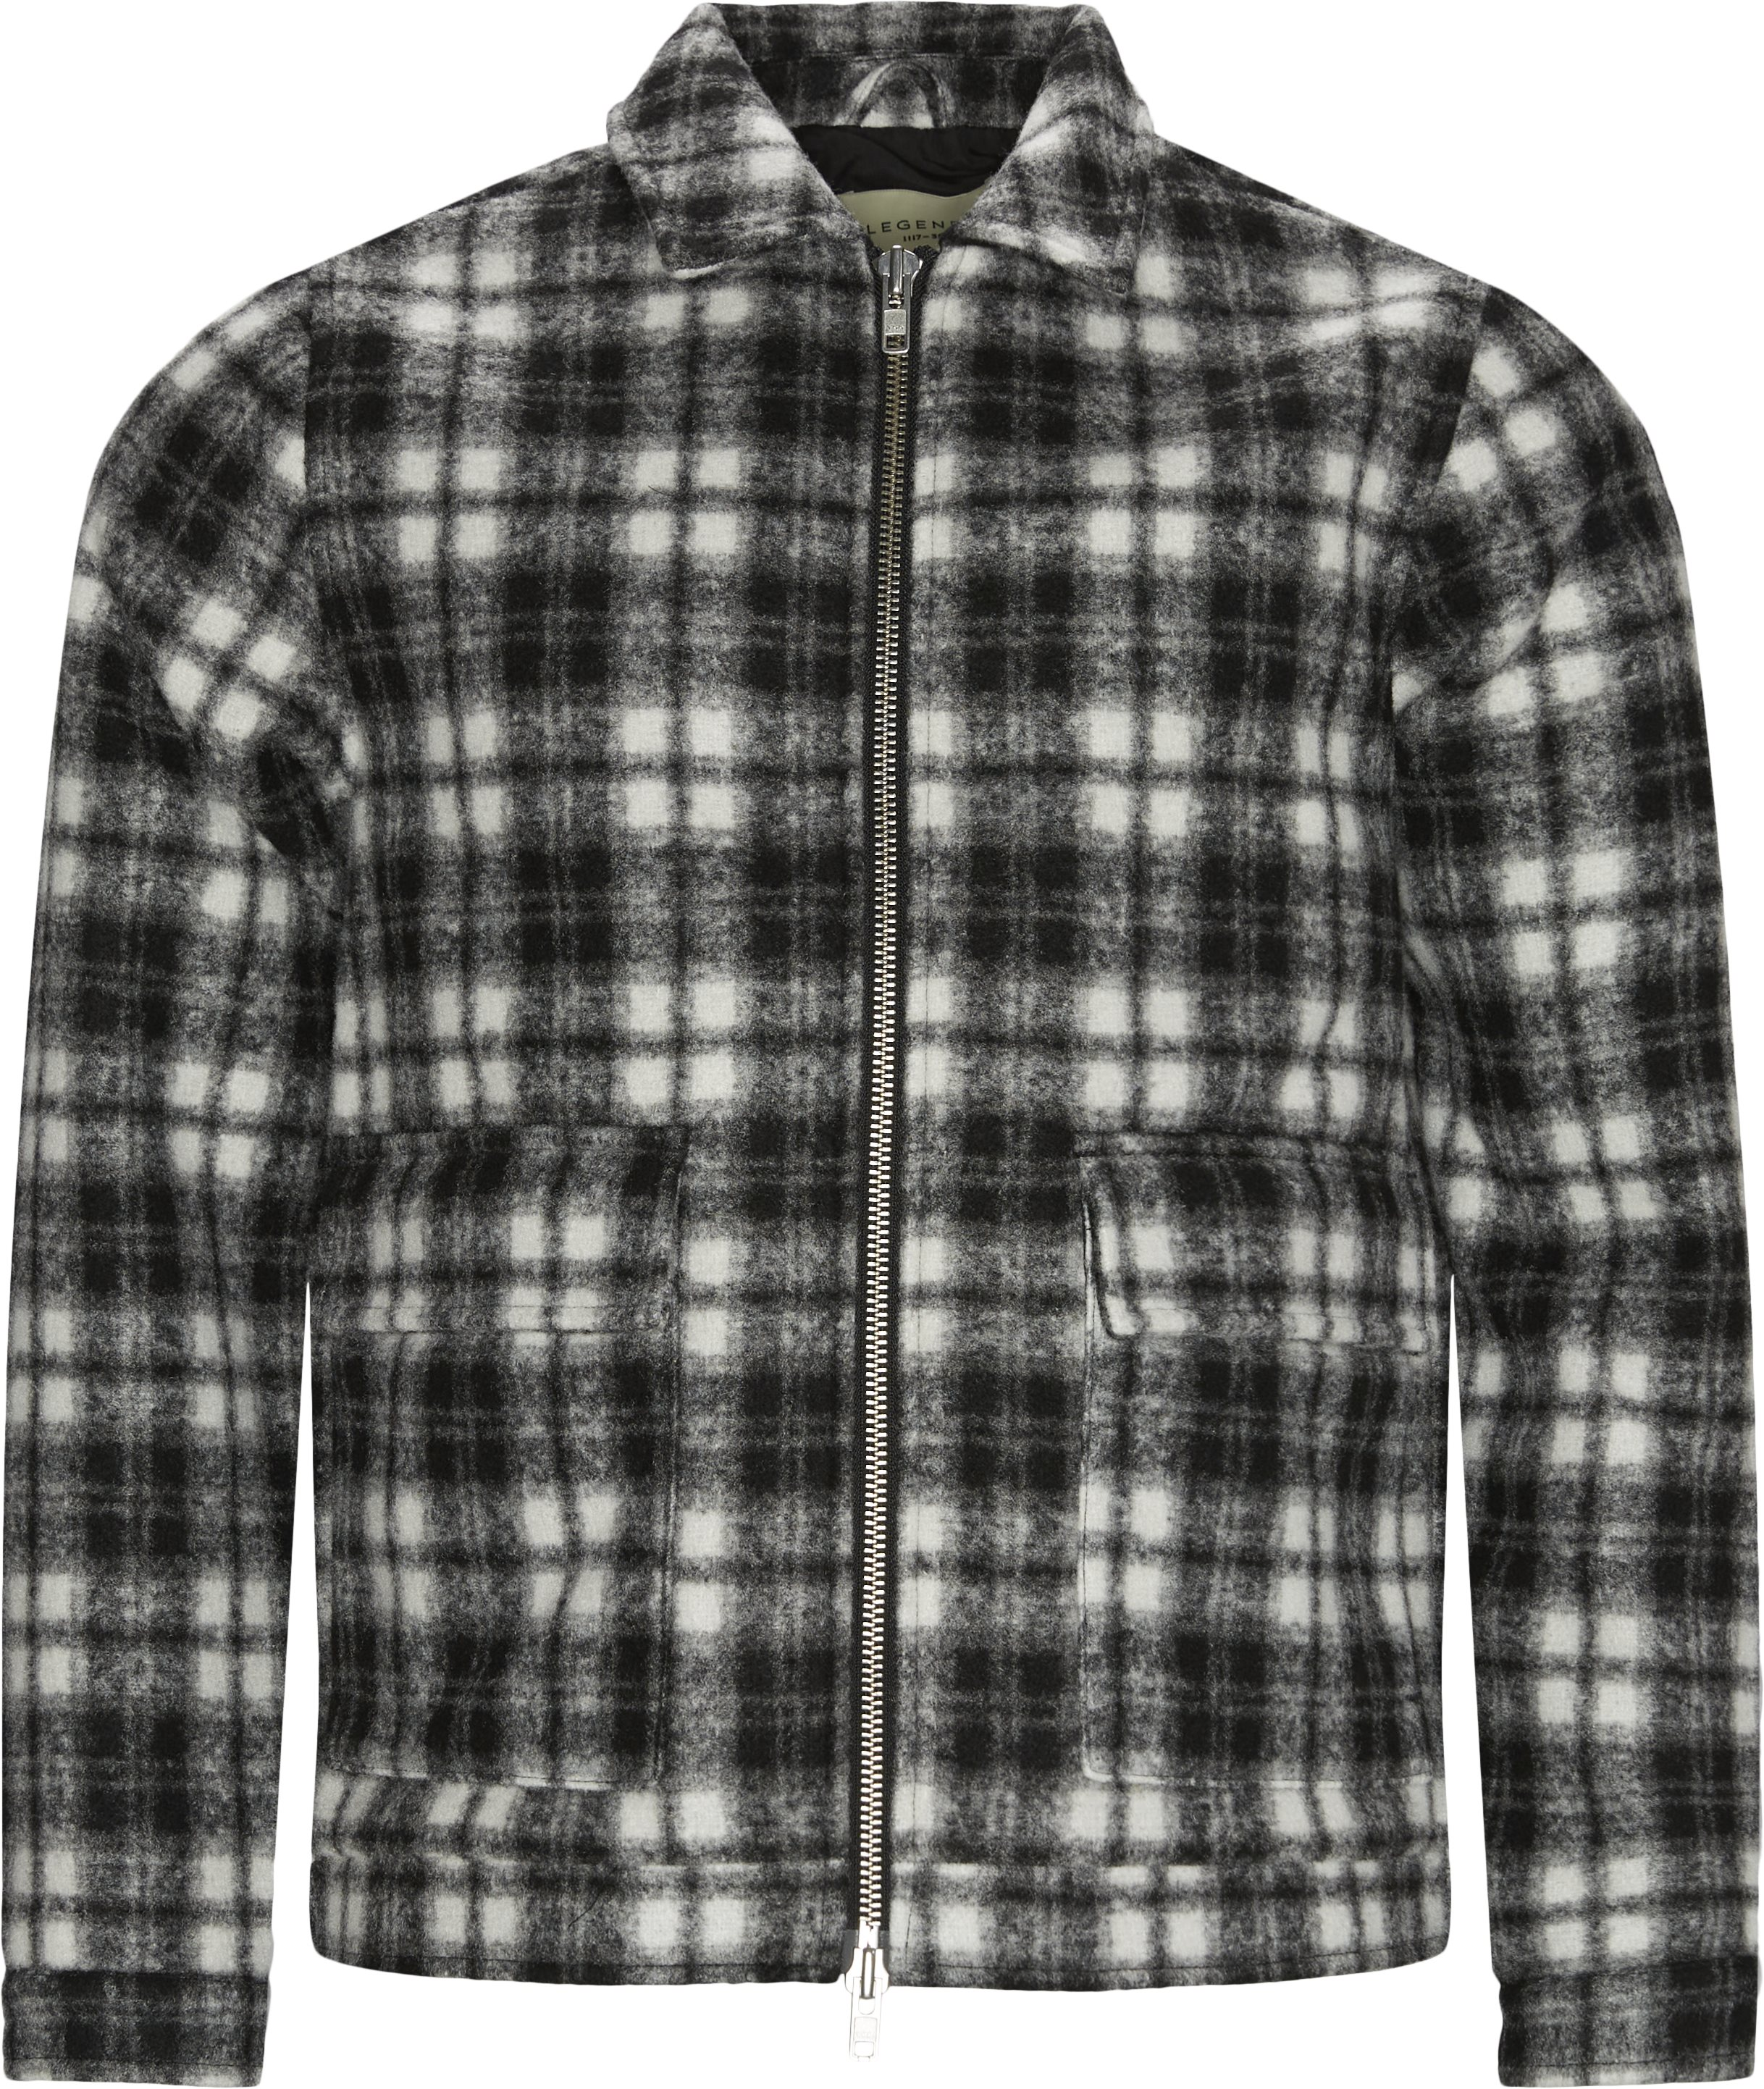 Ortega Jacket - Jakker - Regular - Sort